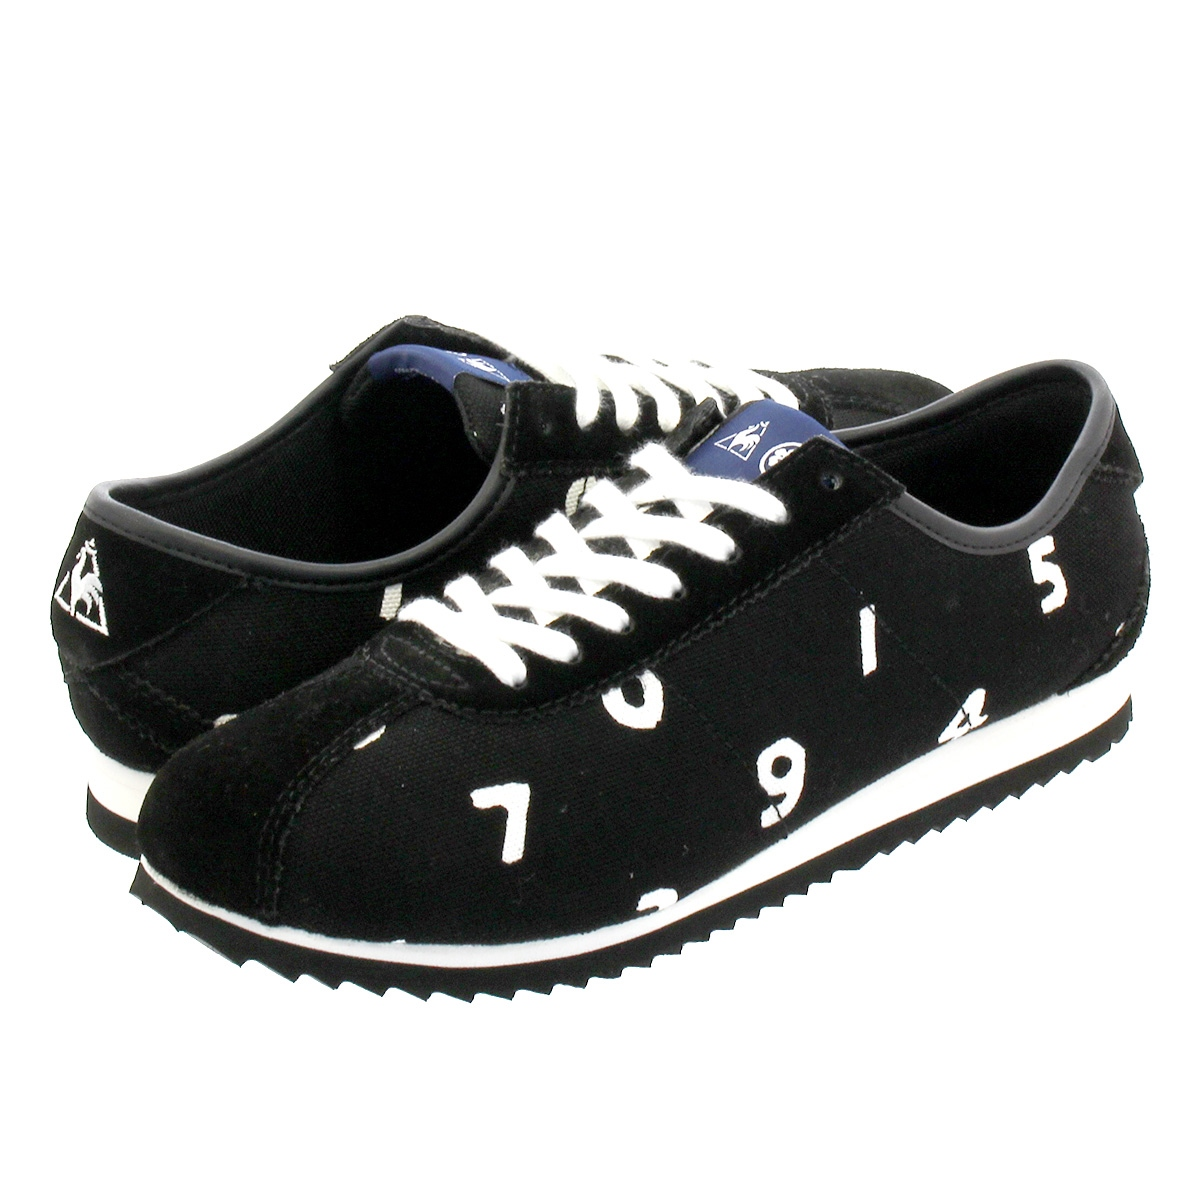 le coq sportif MONTPELLIER JP SOUSOU 【十数】【SO-SU-U】【MADE IN JAPAN】 ルコック スポルティフ モンペリエ JP ソウソウ BLACK